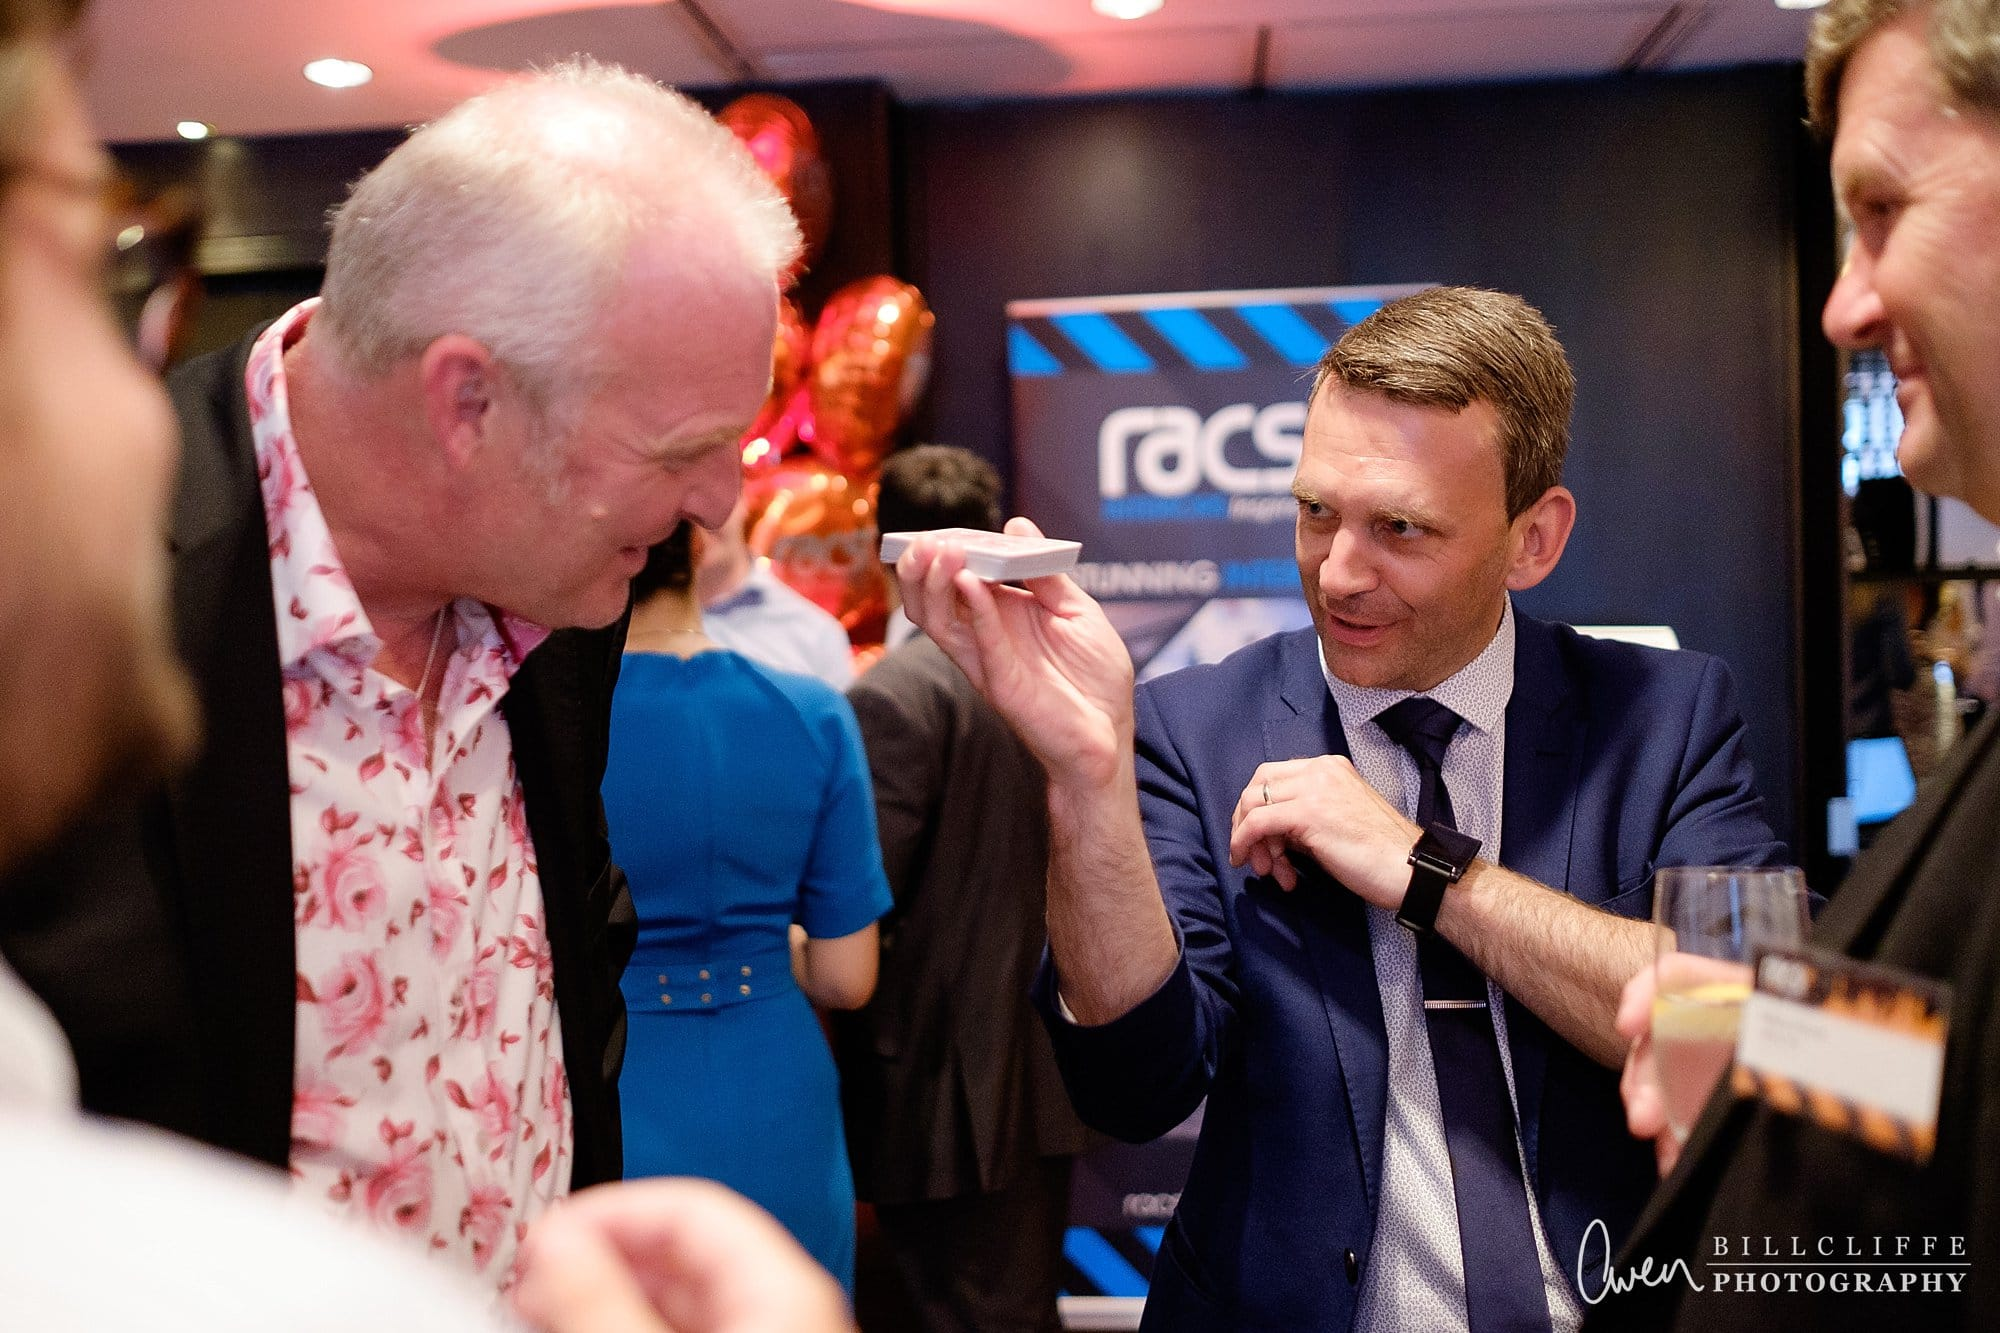 london wedding photographer magician lee smith 010 - Event Entertainer Spotlight: Lee Smith, Walkabout Magician